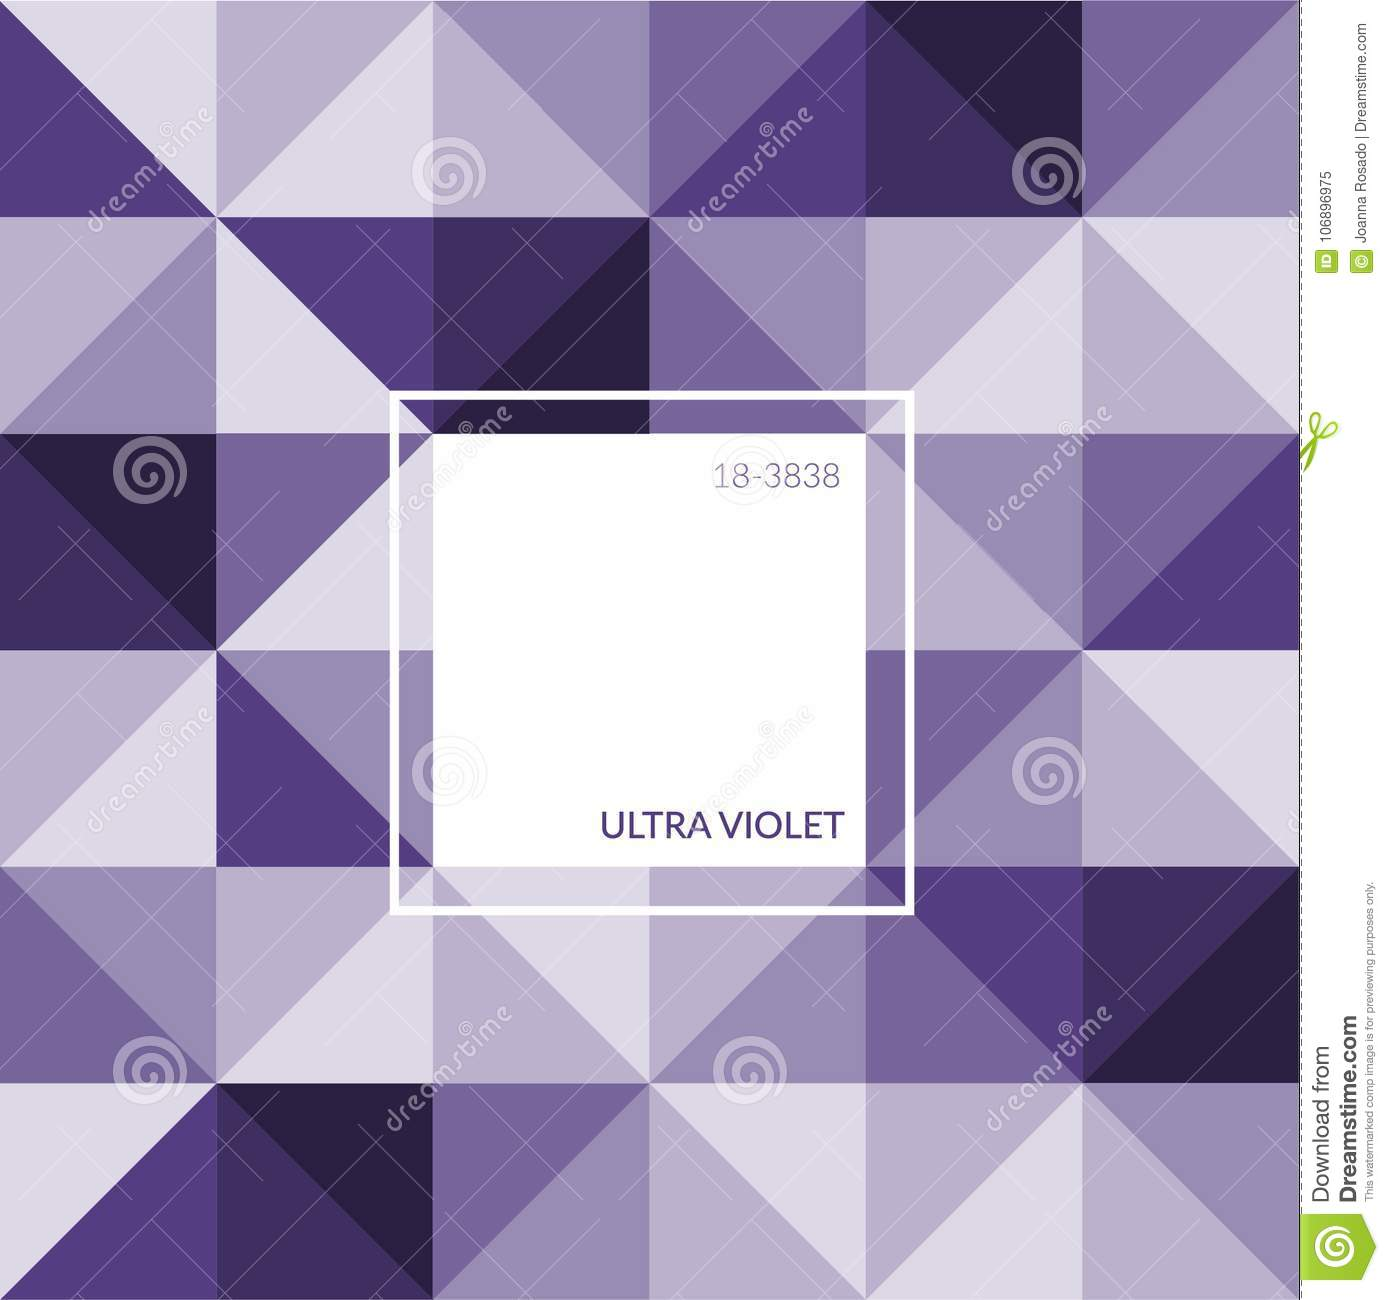 ultra violet color of the year 2018 label logo sign symbol card